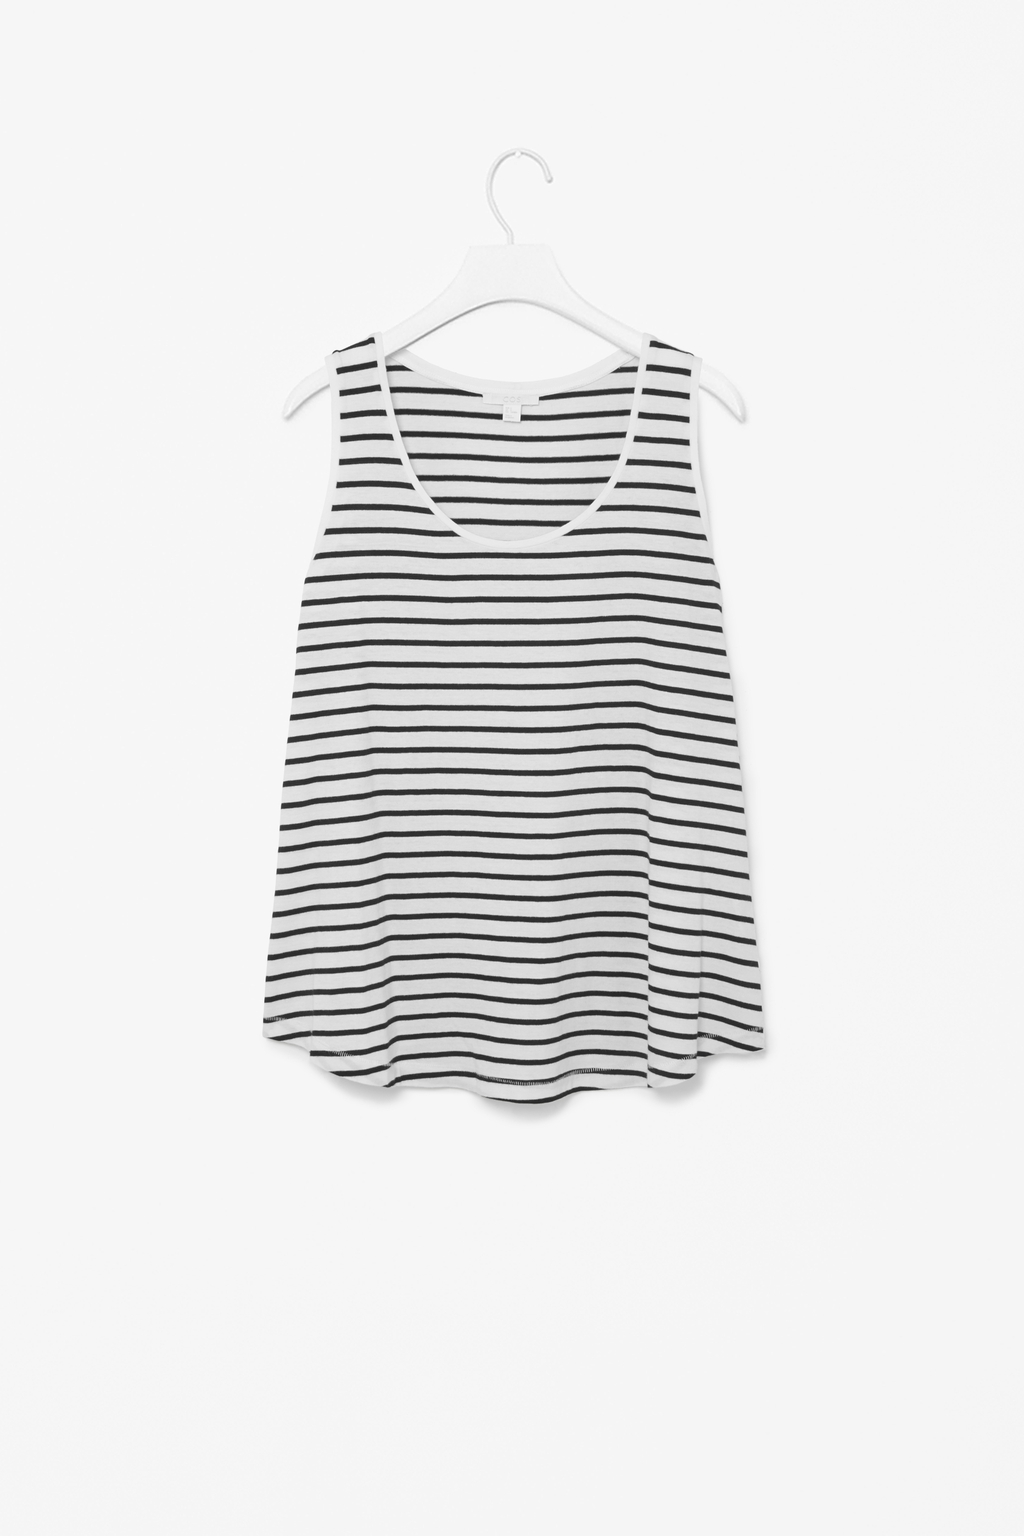 A Line Cotton Vest - sleeve style: standard vest straps/shoulder straps; pattern: horizontal stripes; style: vest top; secondary colour: white; predominant colour: black; occasions: casual; length: standard; neckline: scoop; fibres: cotton - 100%; fit: loose; sleeve length: sleeveless; pattern type: fabric; texture group: jersey - stretchy/drapey; season: s/s 2014; pattern size: big & busy (top)